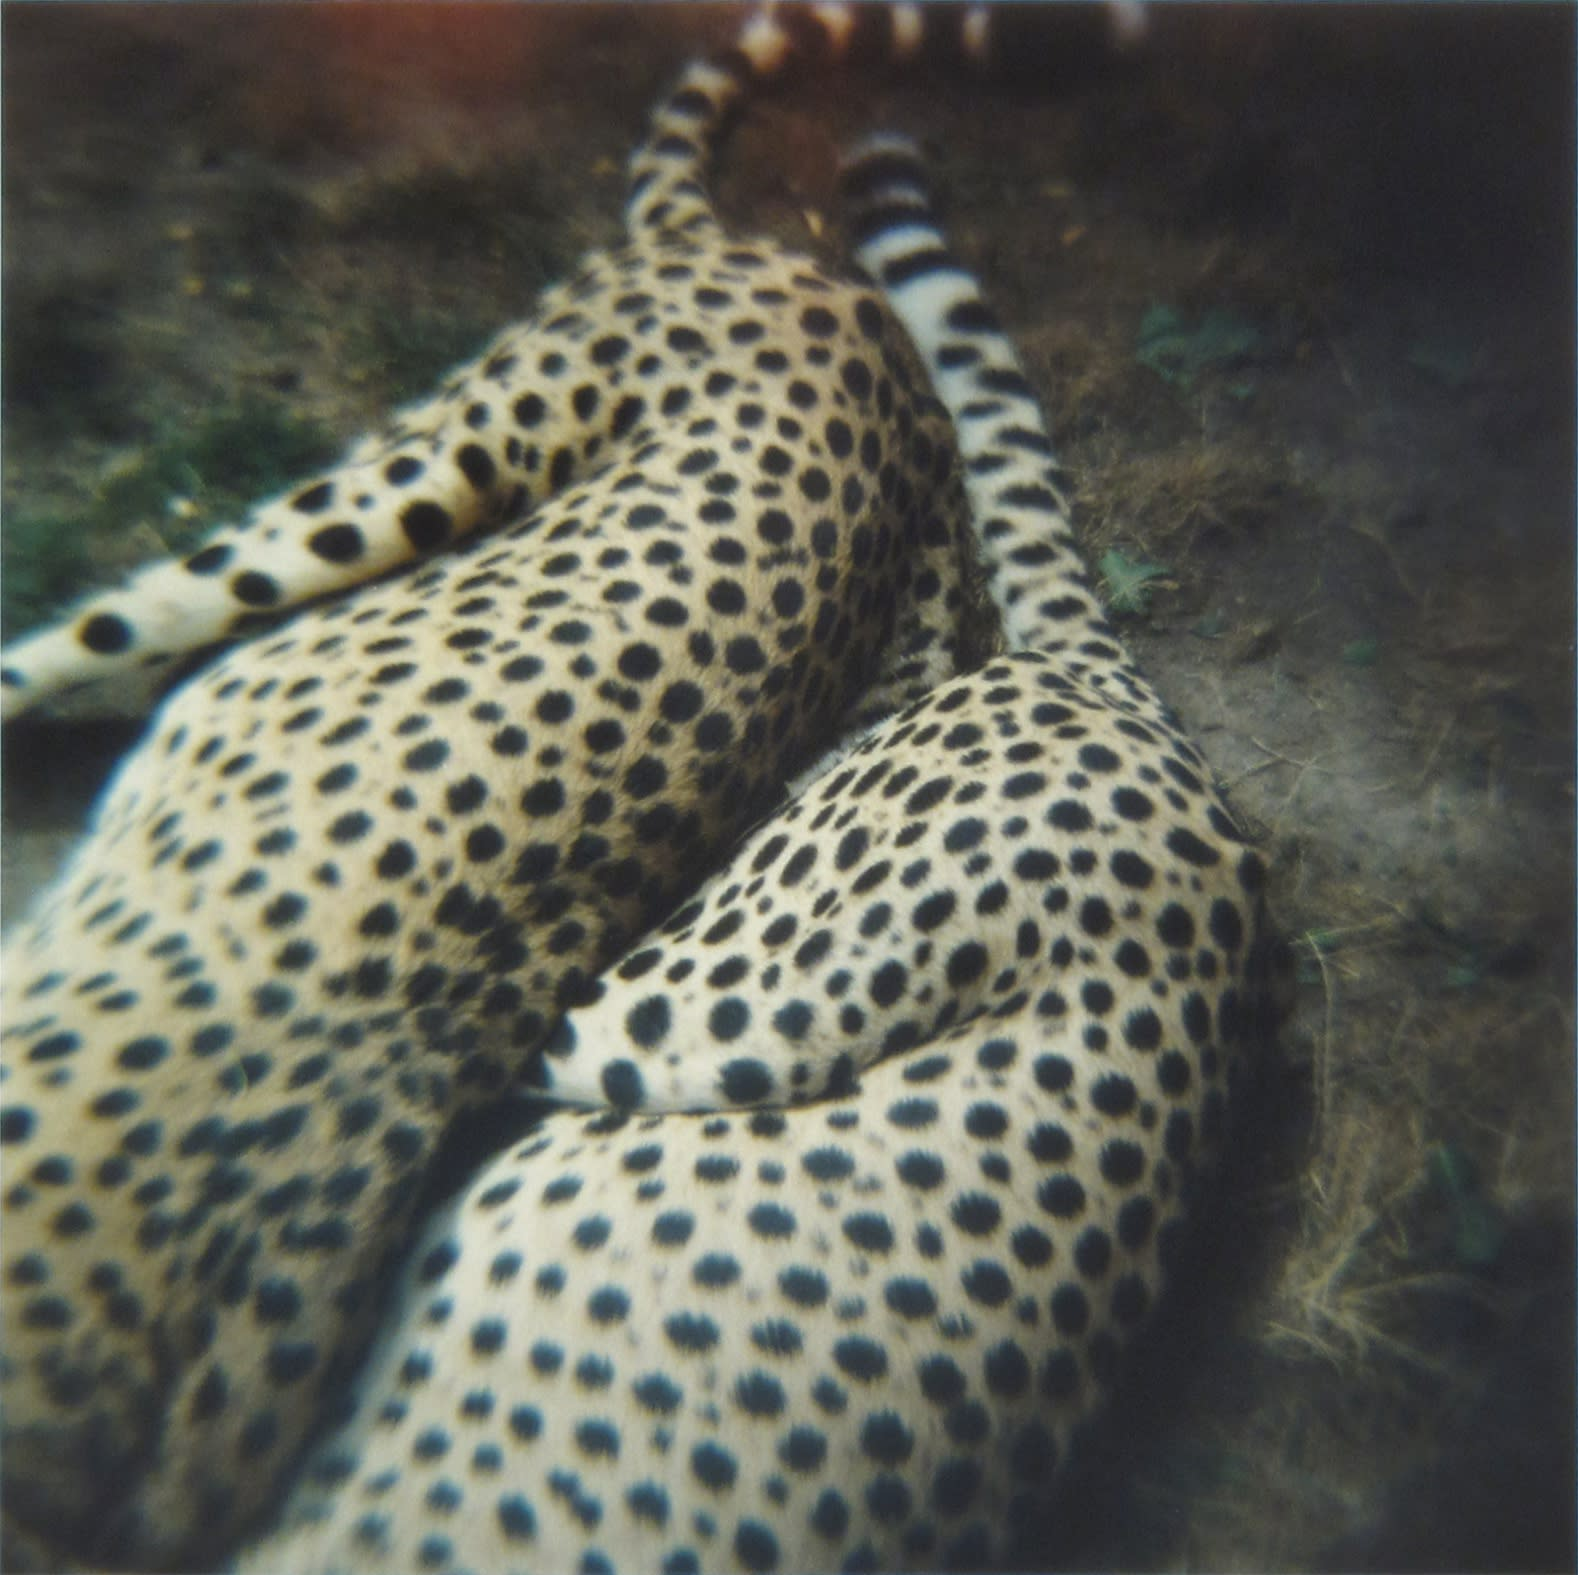 Amy Blakemore Cheetahs, 2018 chromogenic print 15 x 15 in (38.1 x 38.1 cm) ABL 244 $3,000